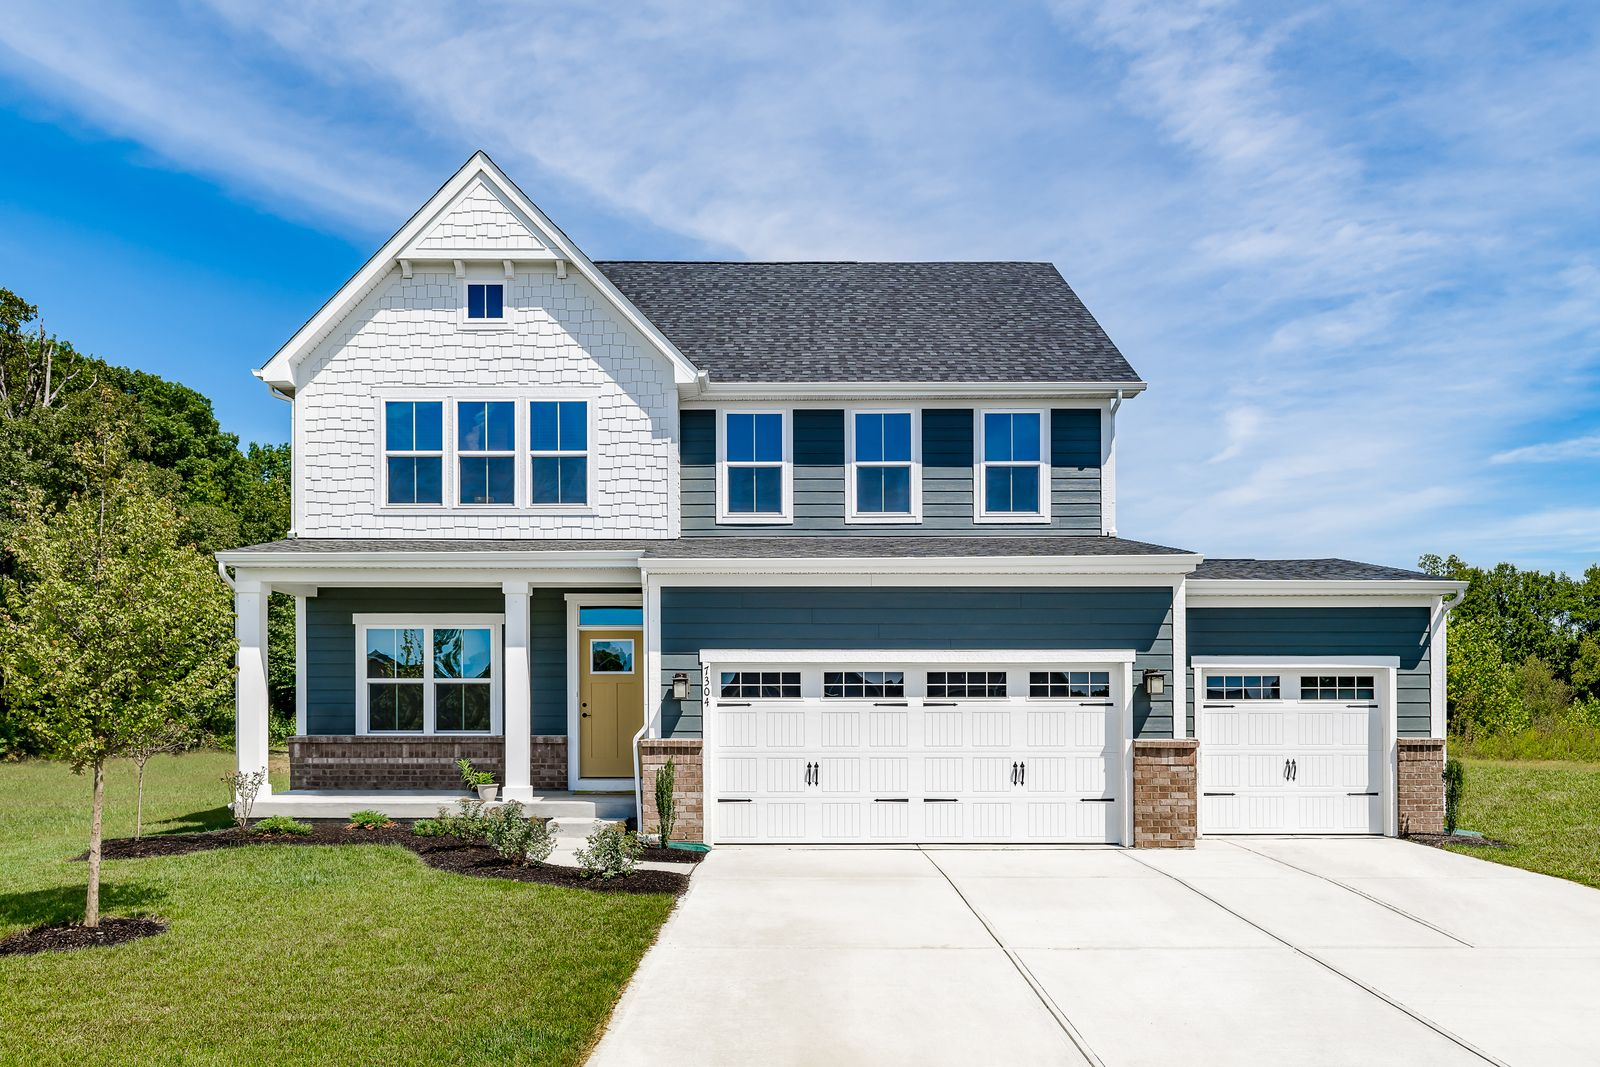 WELCOME HOME TO WILLOWBROOK:New 2-story homes in Delaware—up to ½ acre homesites, established neighborhood, walkable to YMCA, Veterans Park & Splash Pad, close to Rt 23 & Rt 36—low $300s.Click here to schedule your visit today!